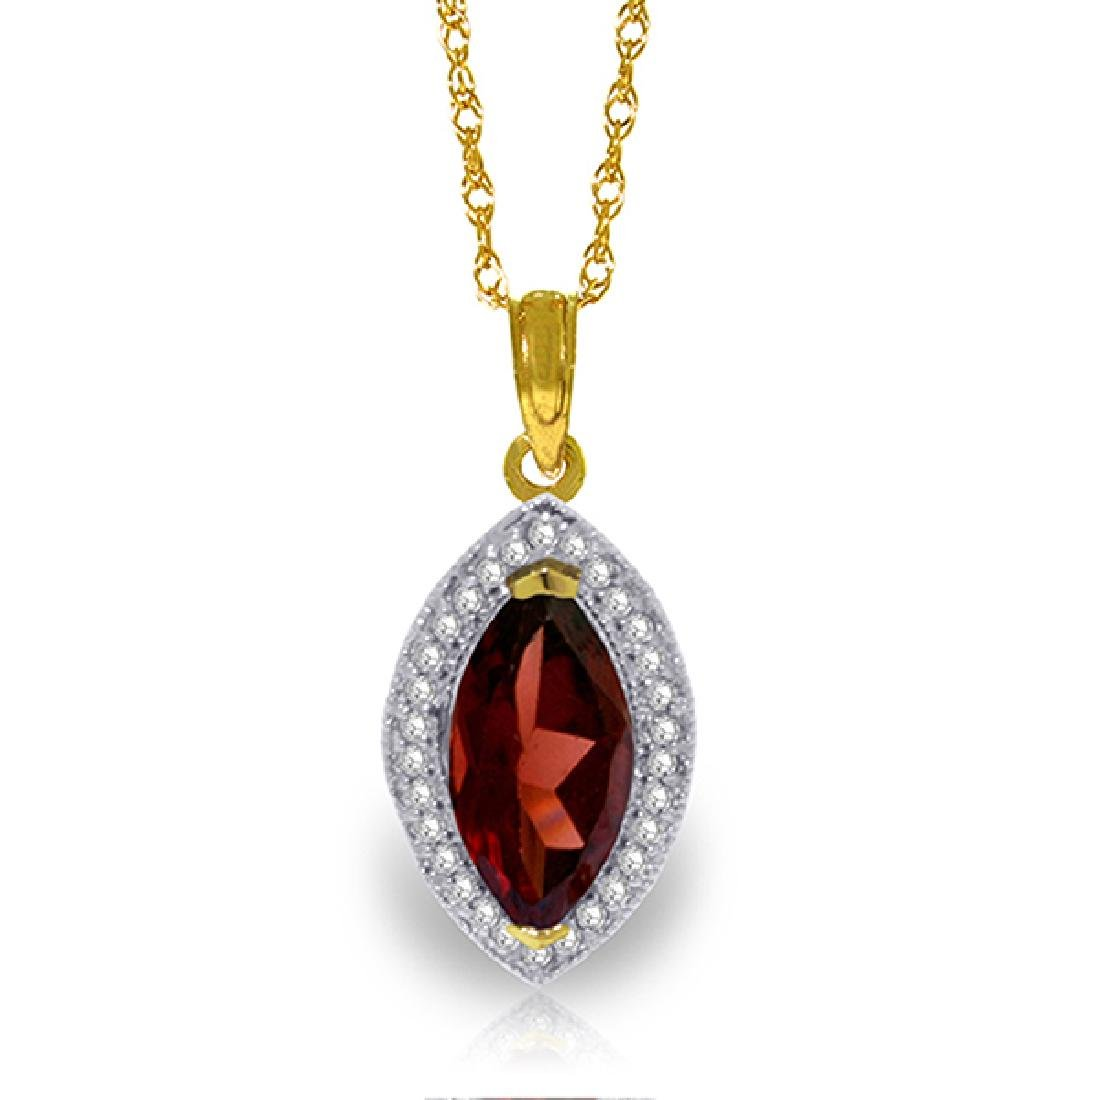 Genuine 2.15 ctw Garnet & Diamond Necklace Jewelry 14KT